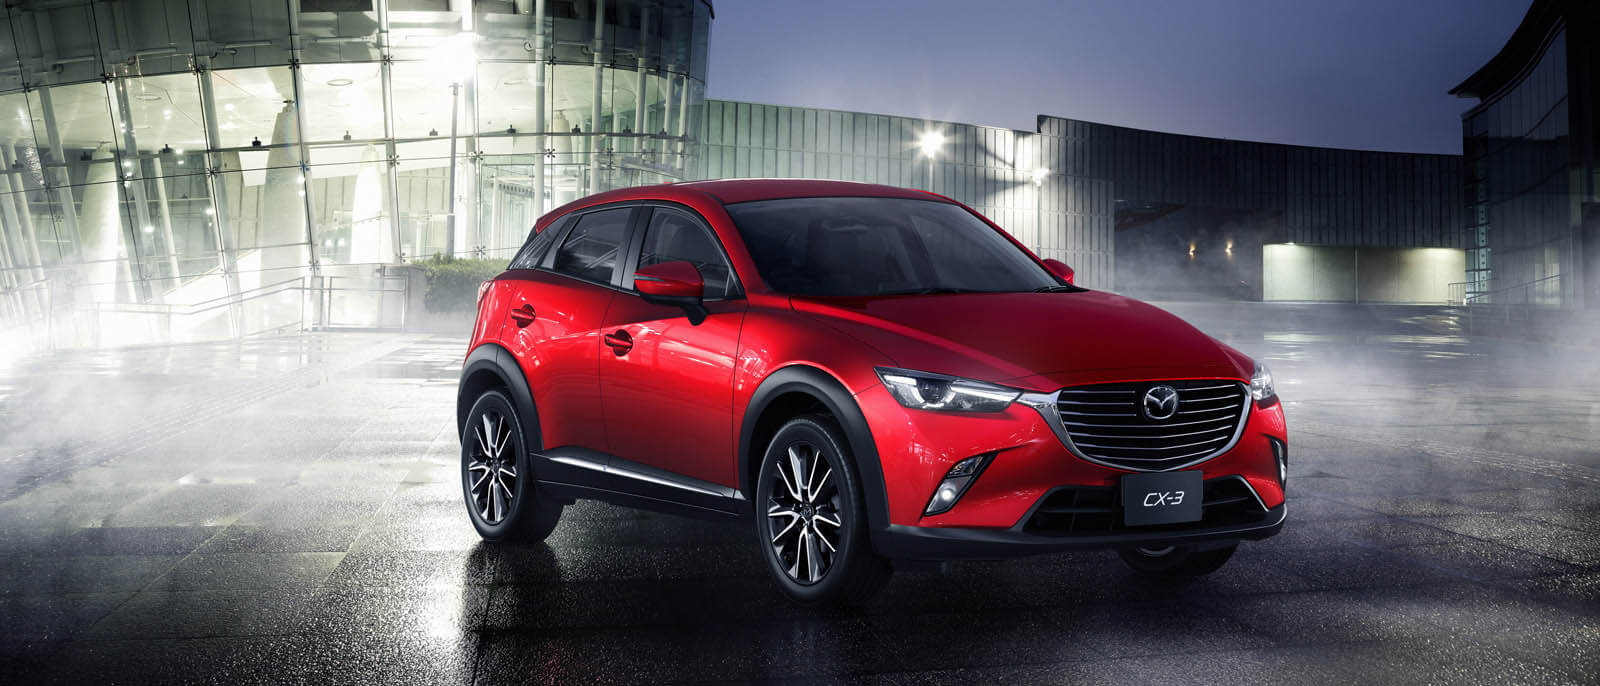 Mazda CX-3 front view